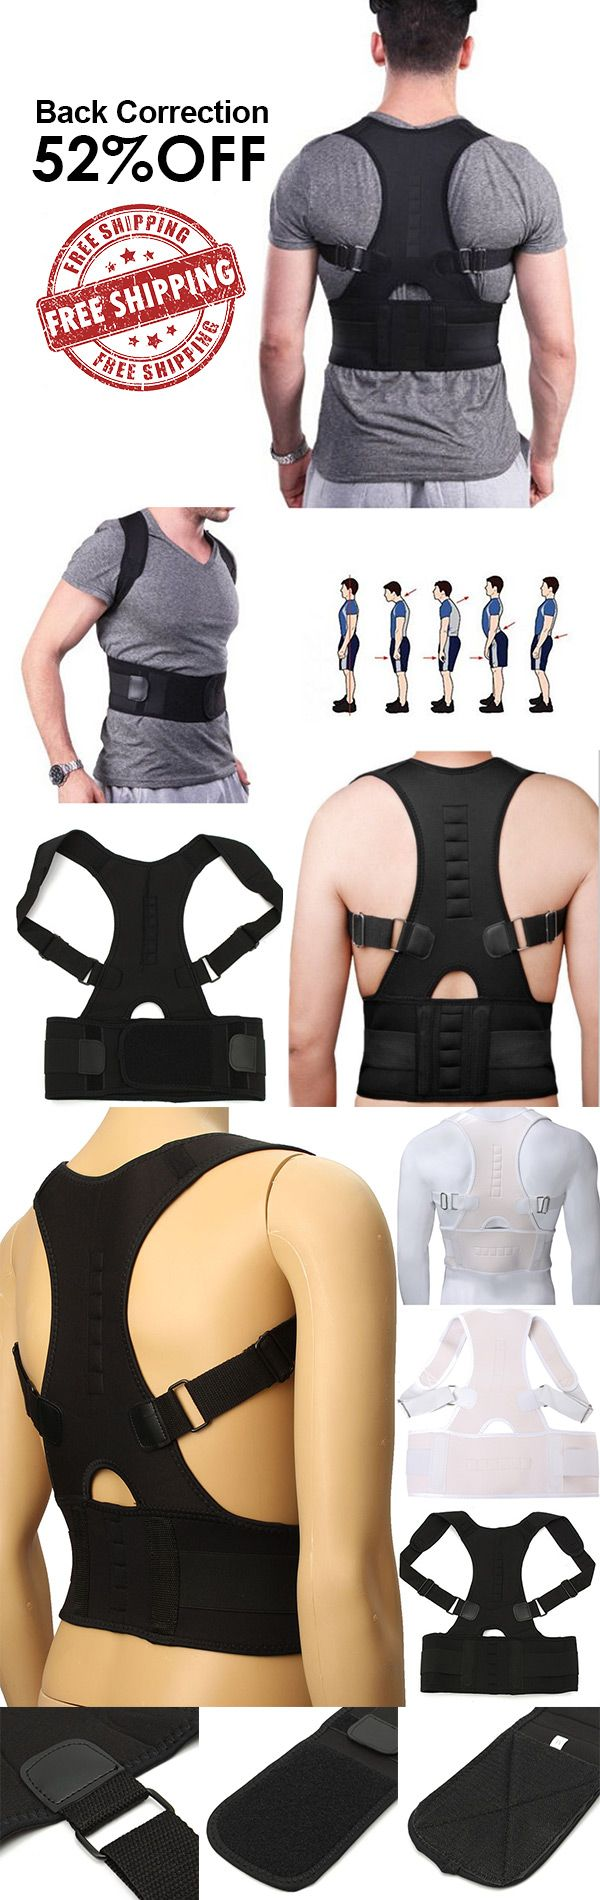 Adjustable Back Posture Corrector Belt Shoulder Brace Support Correction Band Vest